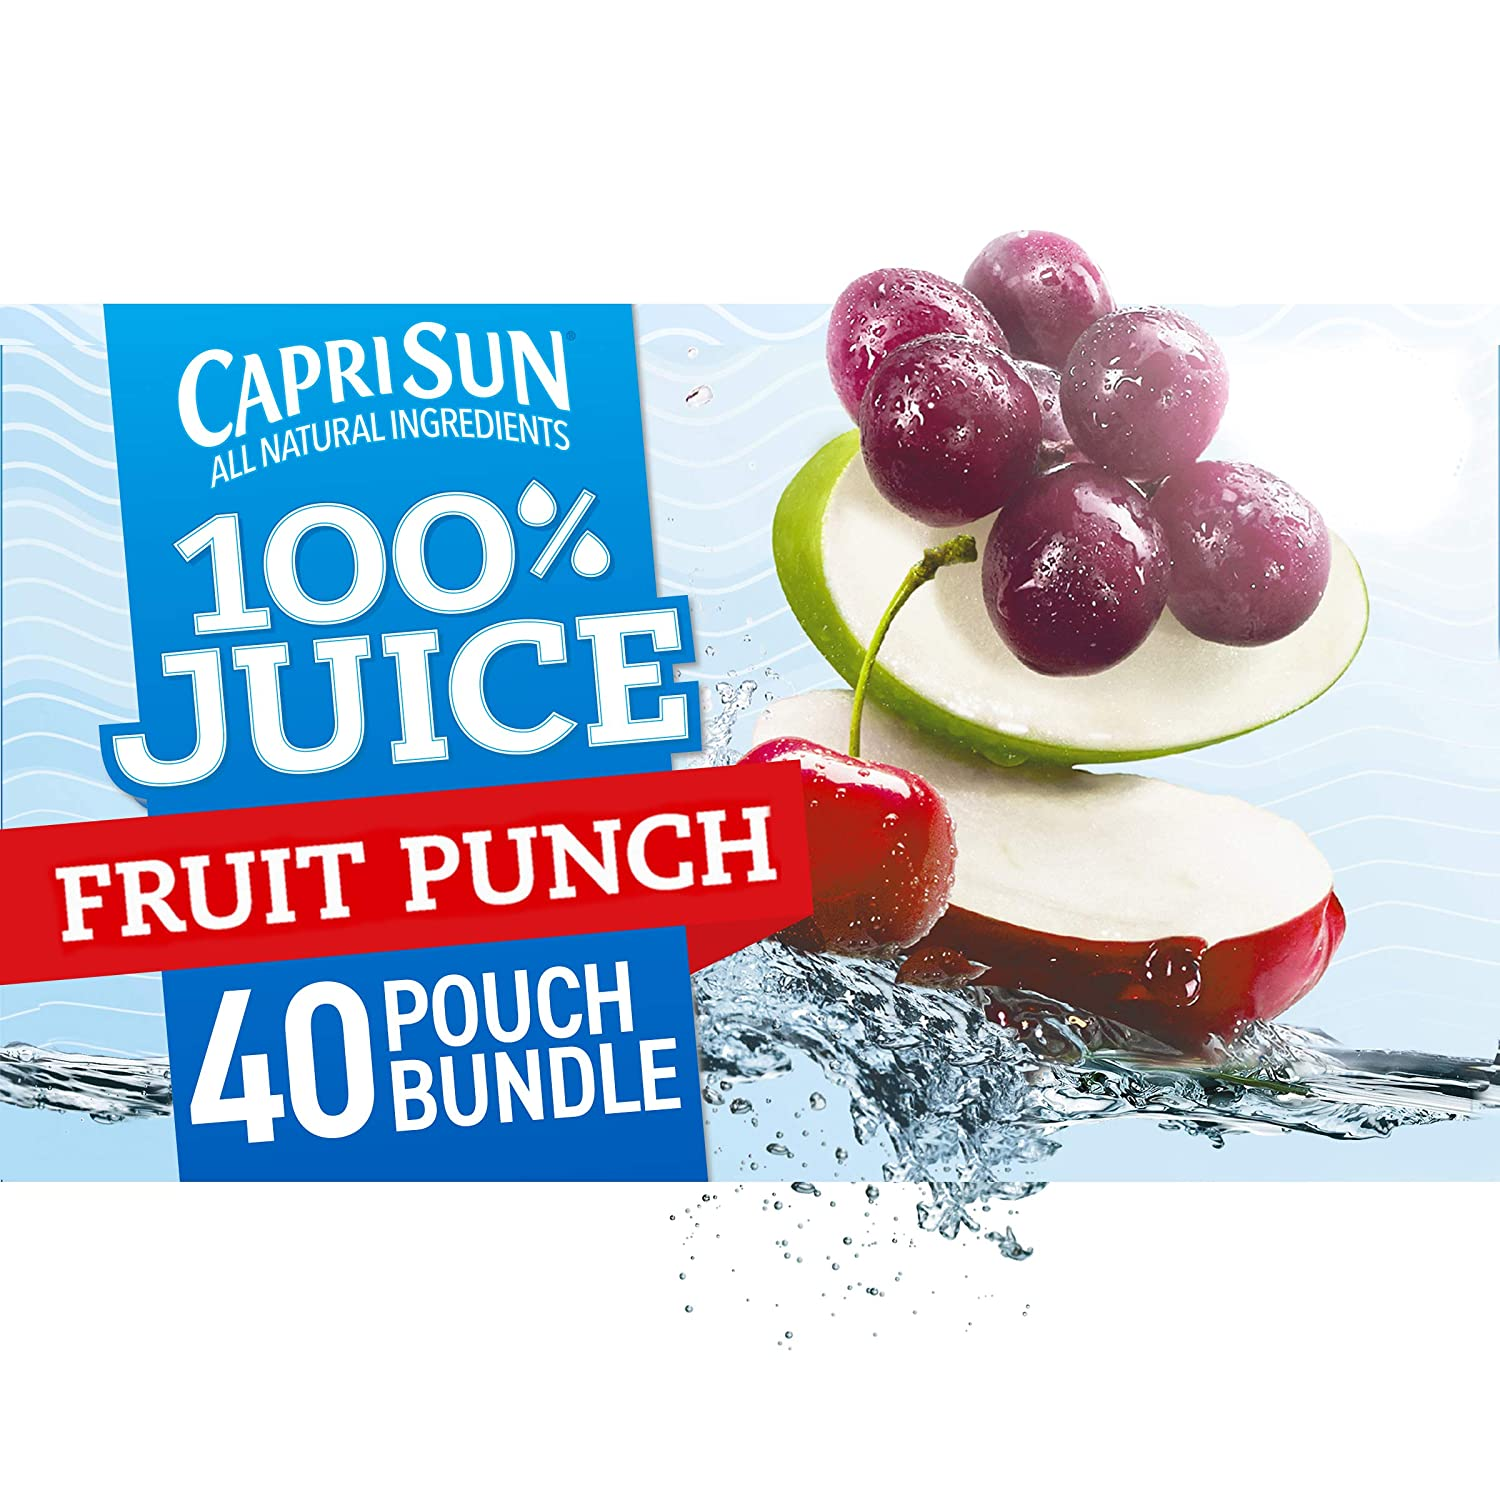 Capri Sun Fruit Punch Ready-to-Drink 100% Juice (40 Pouches, 4 Boxes of 10)